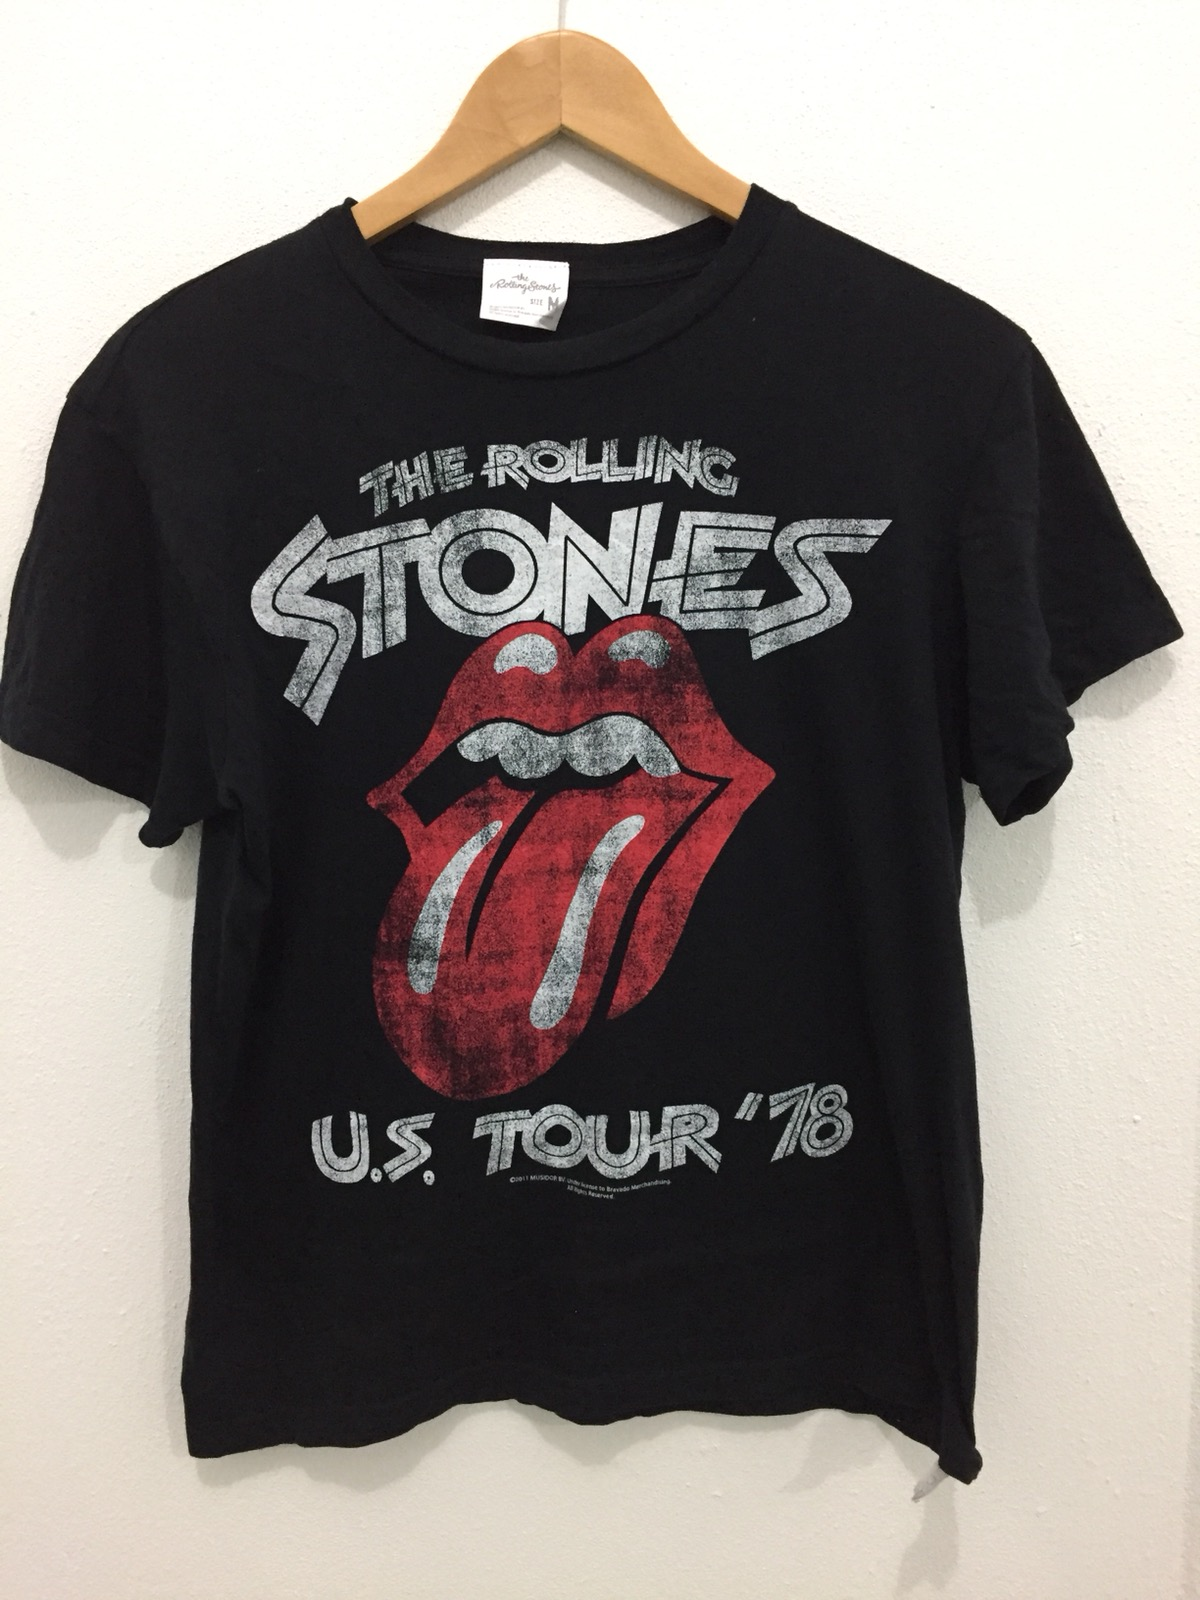 The Rolling Stones T-Shirt Distressed Design Tie Dye US TOUR /'78 CNCERT NEW